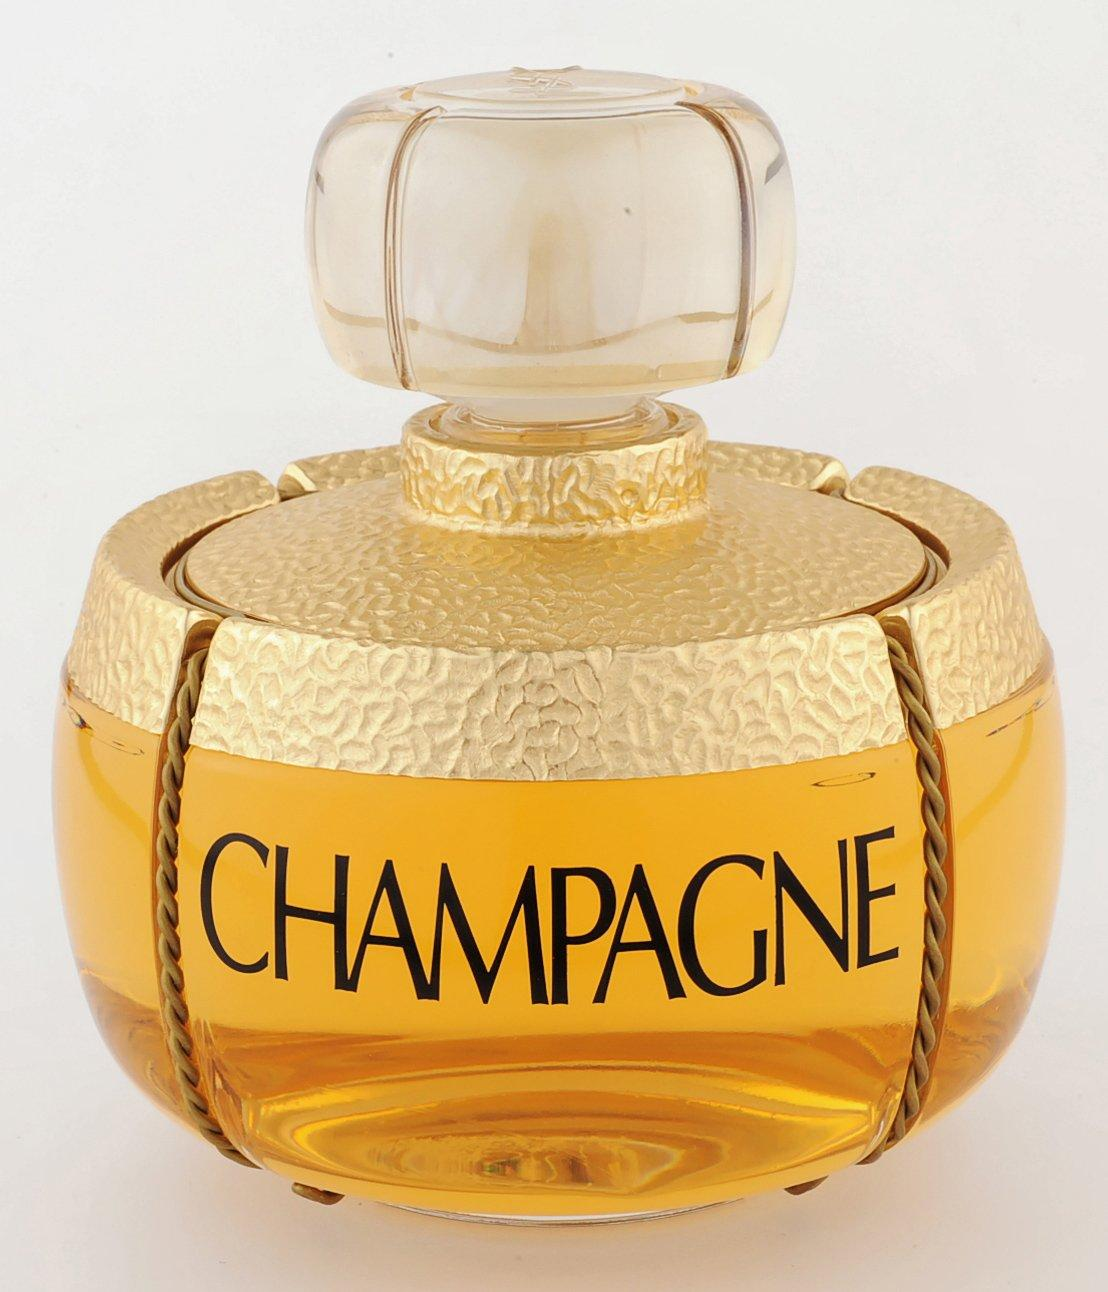 Champagne Laurent Yves Saint Champagne Yves Laurent Saint Saint Champagne Yves 54LRjq3A